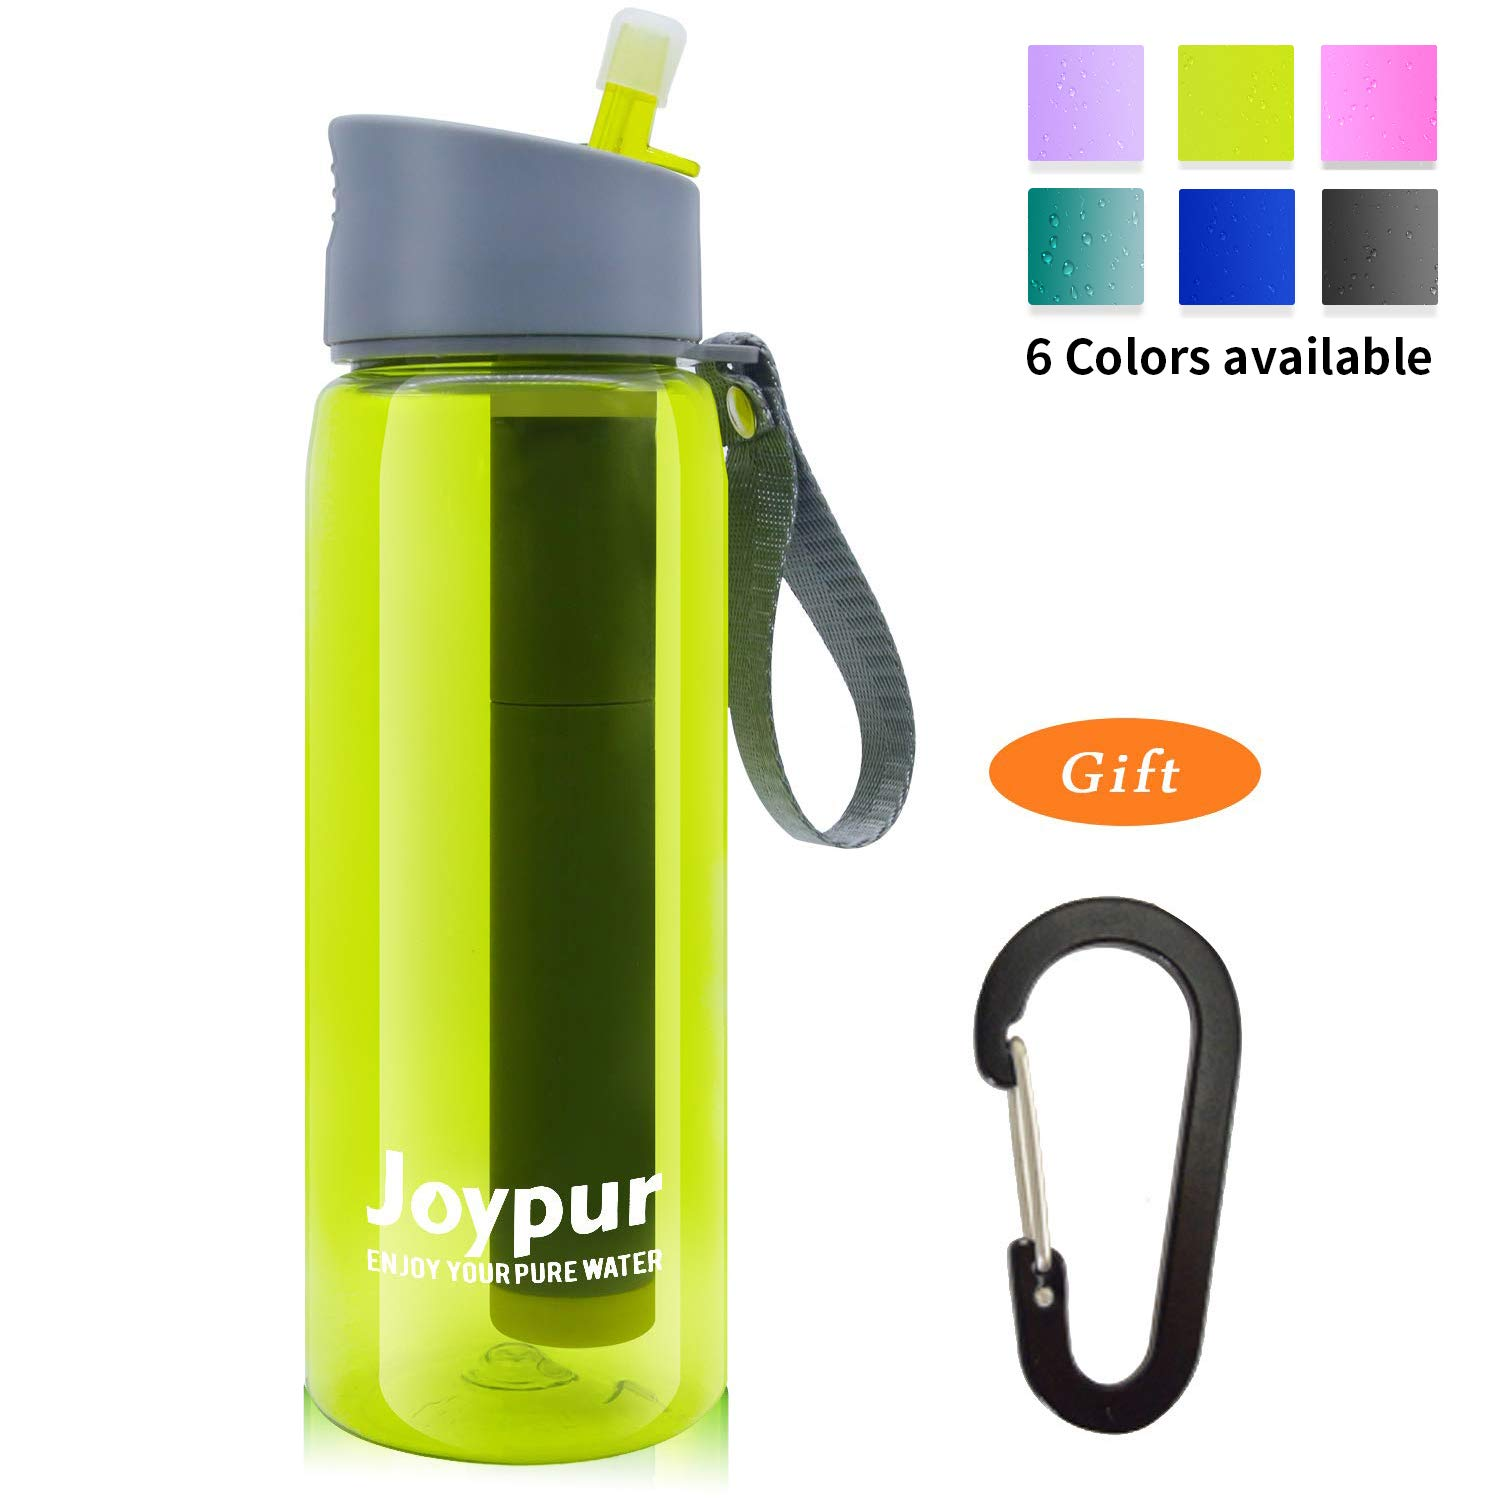 joypur Outdoor Filtered Water Bottle - Camping Water Filter with 3-Stage Integrated Water Purifier for Travel Hiking Backpacking Yellow by joypur